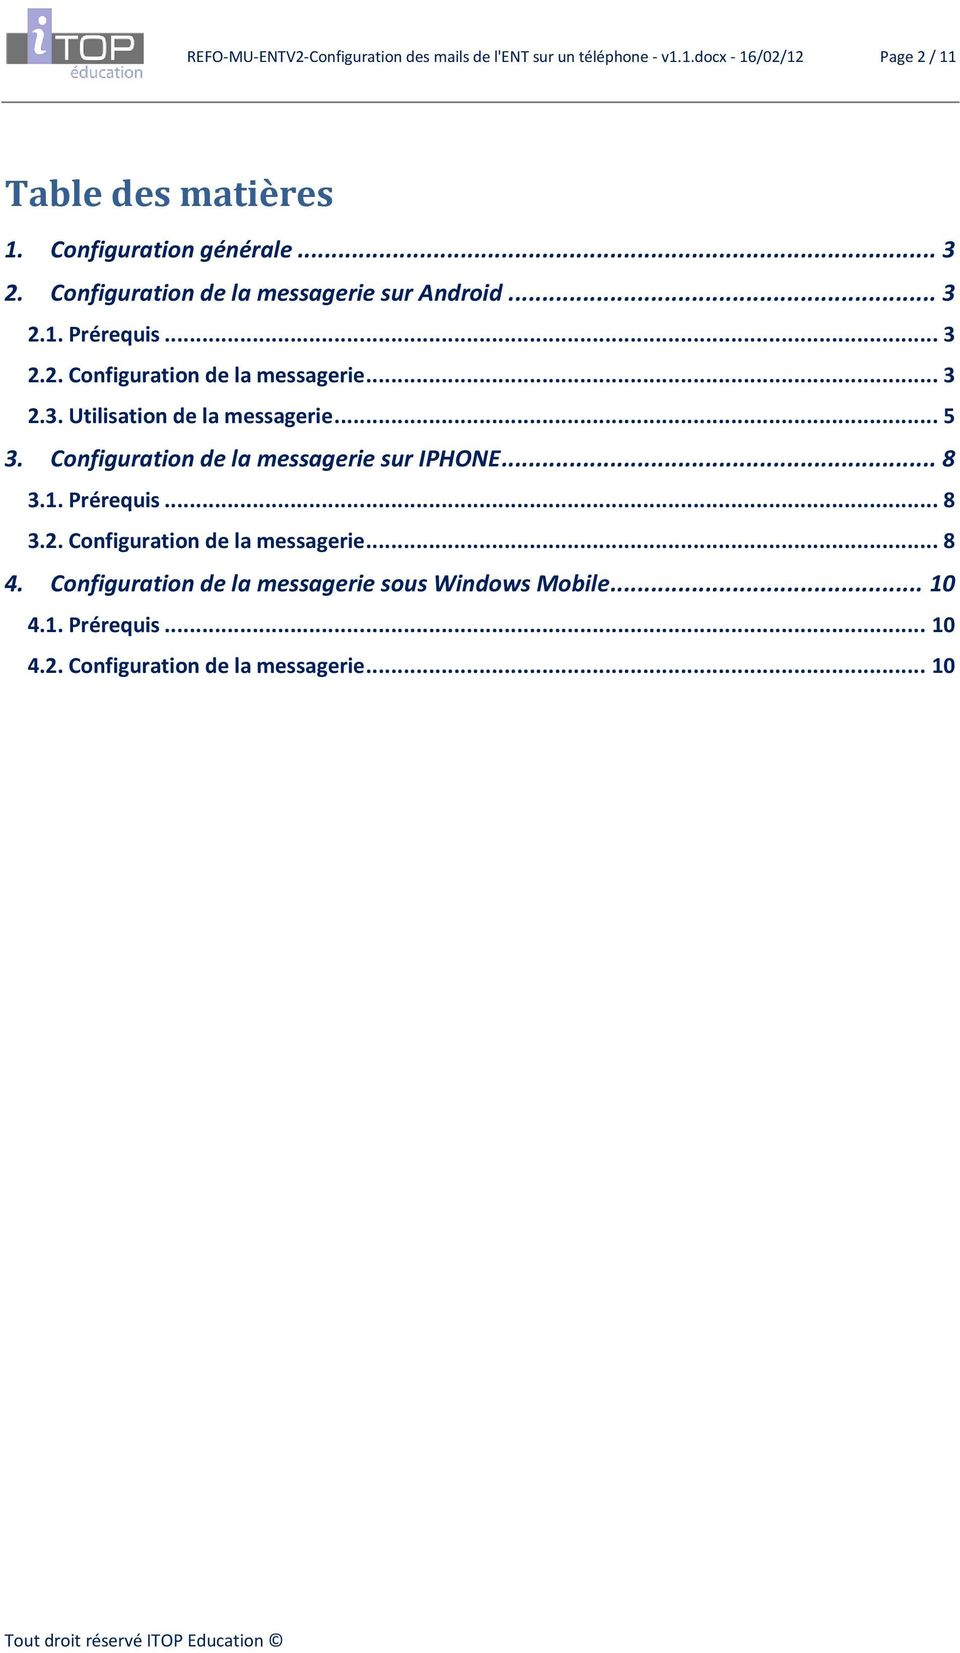 .. 5 3. Configuration de la messagerie sur IPHONE... 8 3.1. Prérequis... 8 3.2. Configuration de la messagerie... 8 4.